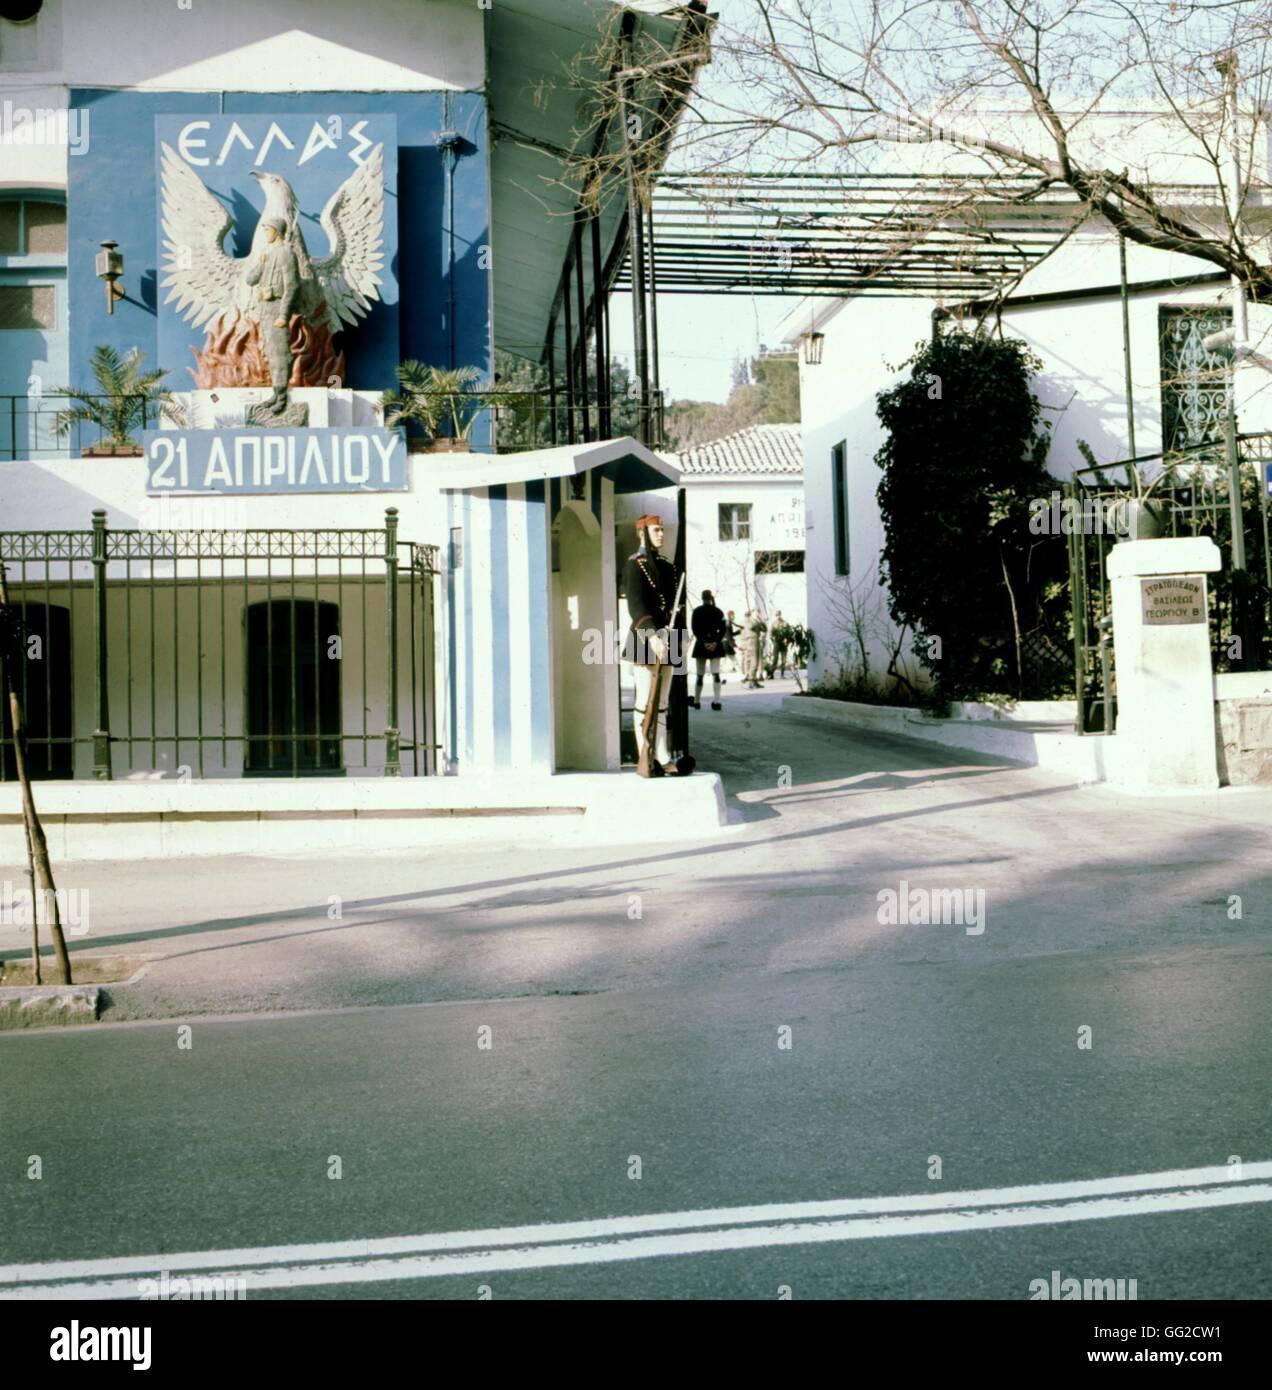 Athens, On the wall, poster symbolizing the regime of the Colonels 1972 Greece Photography: Grivas - Stock Image